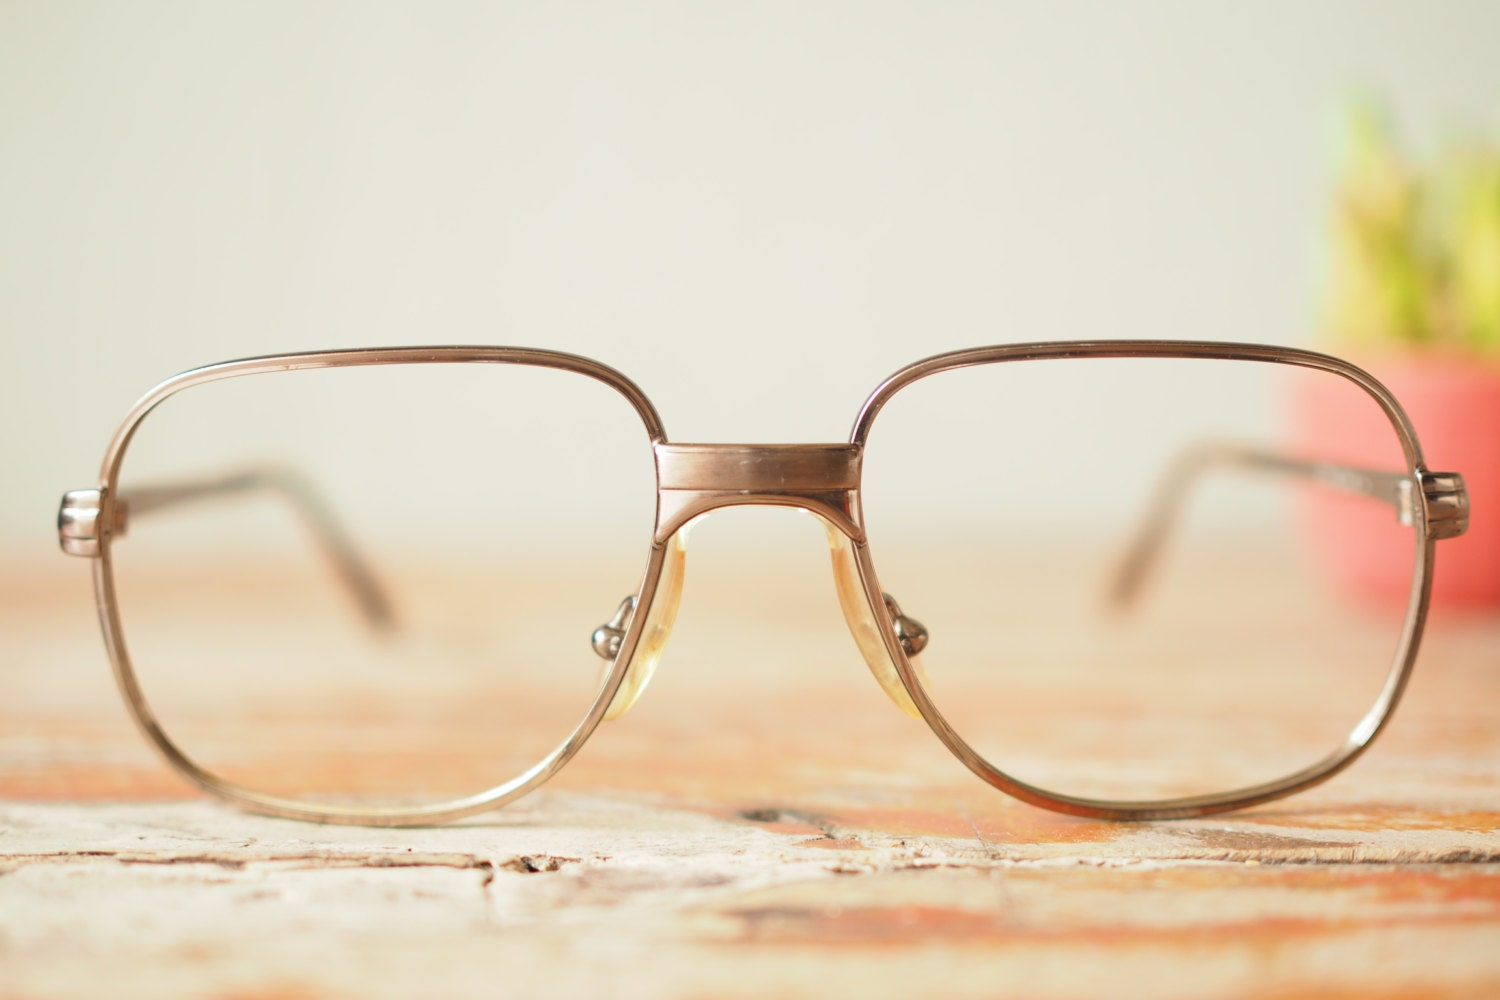 Vintage Aviator Frame Eyeglasses 1980s New Old Stock By